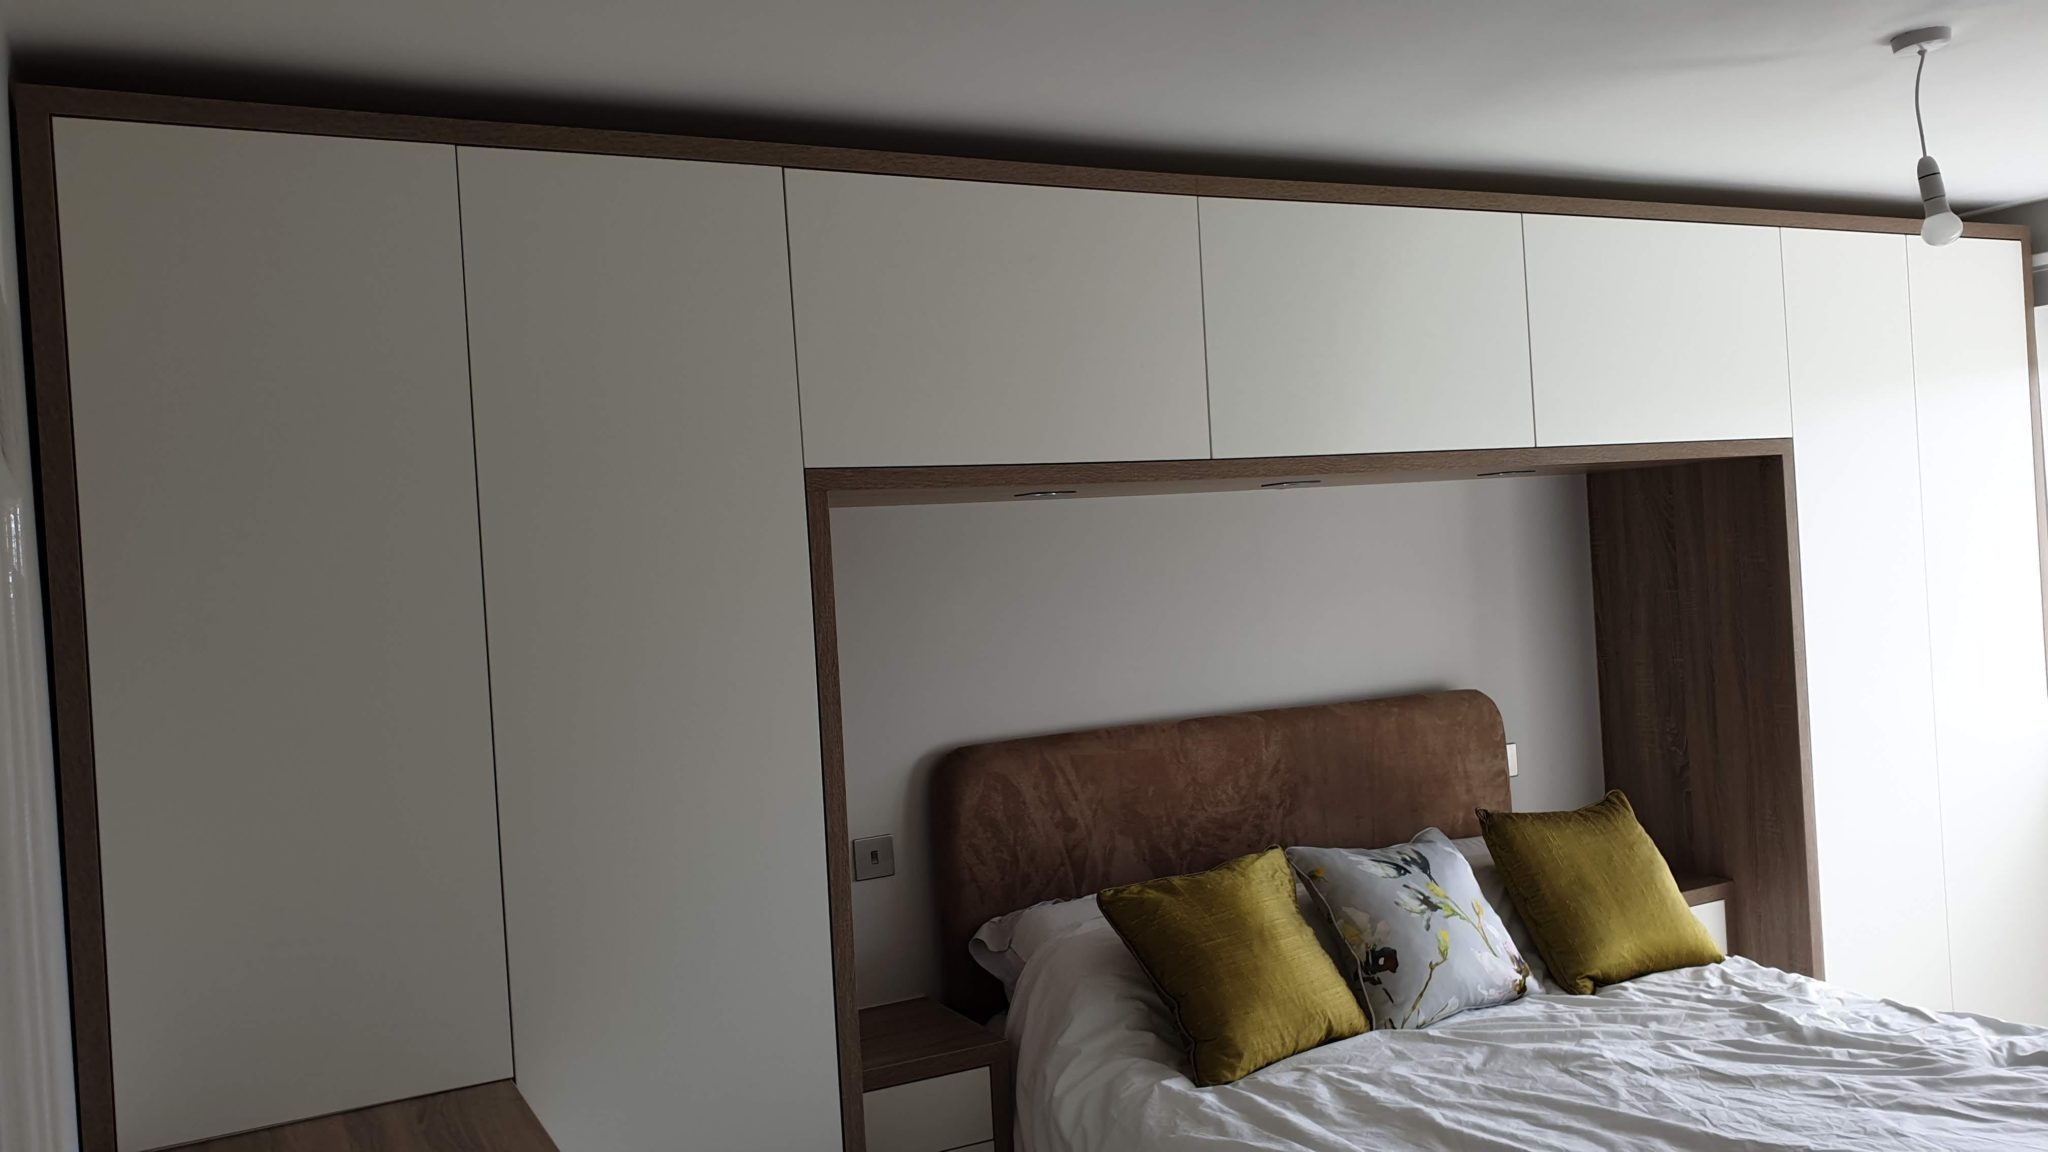 Image of modern style bespoke bedroom furniture made for our customer from Barnsley, South Yorkshire.